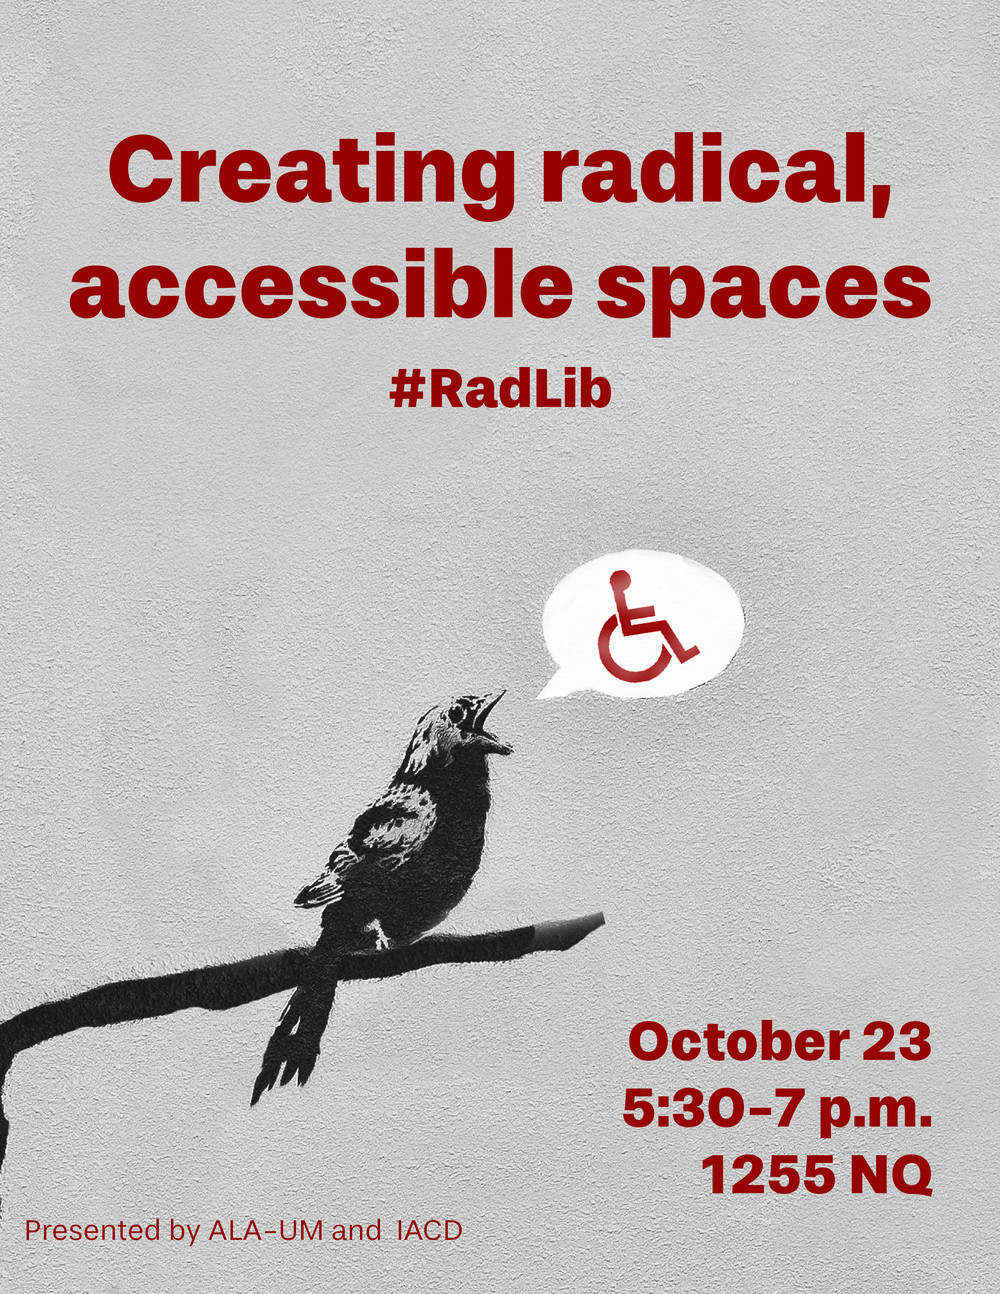 Poster for the second event with graffiti art of a bird chirping and the handicapped symbol in the bird's callout.